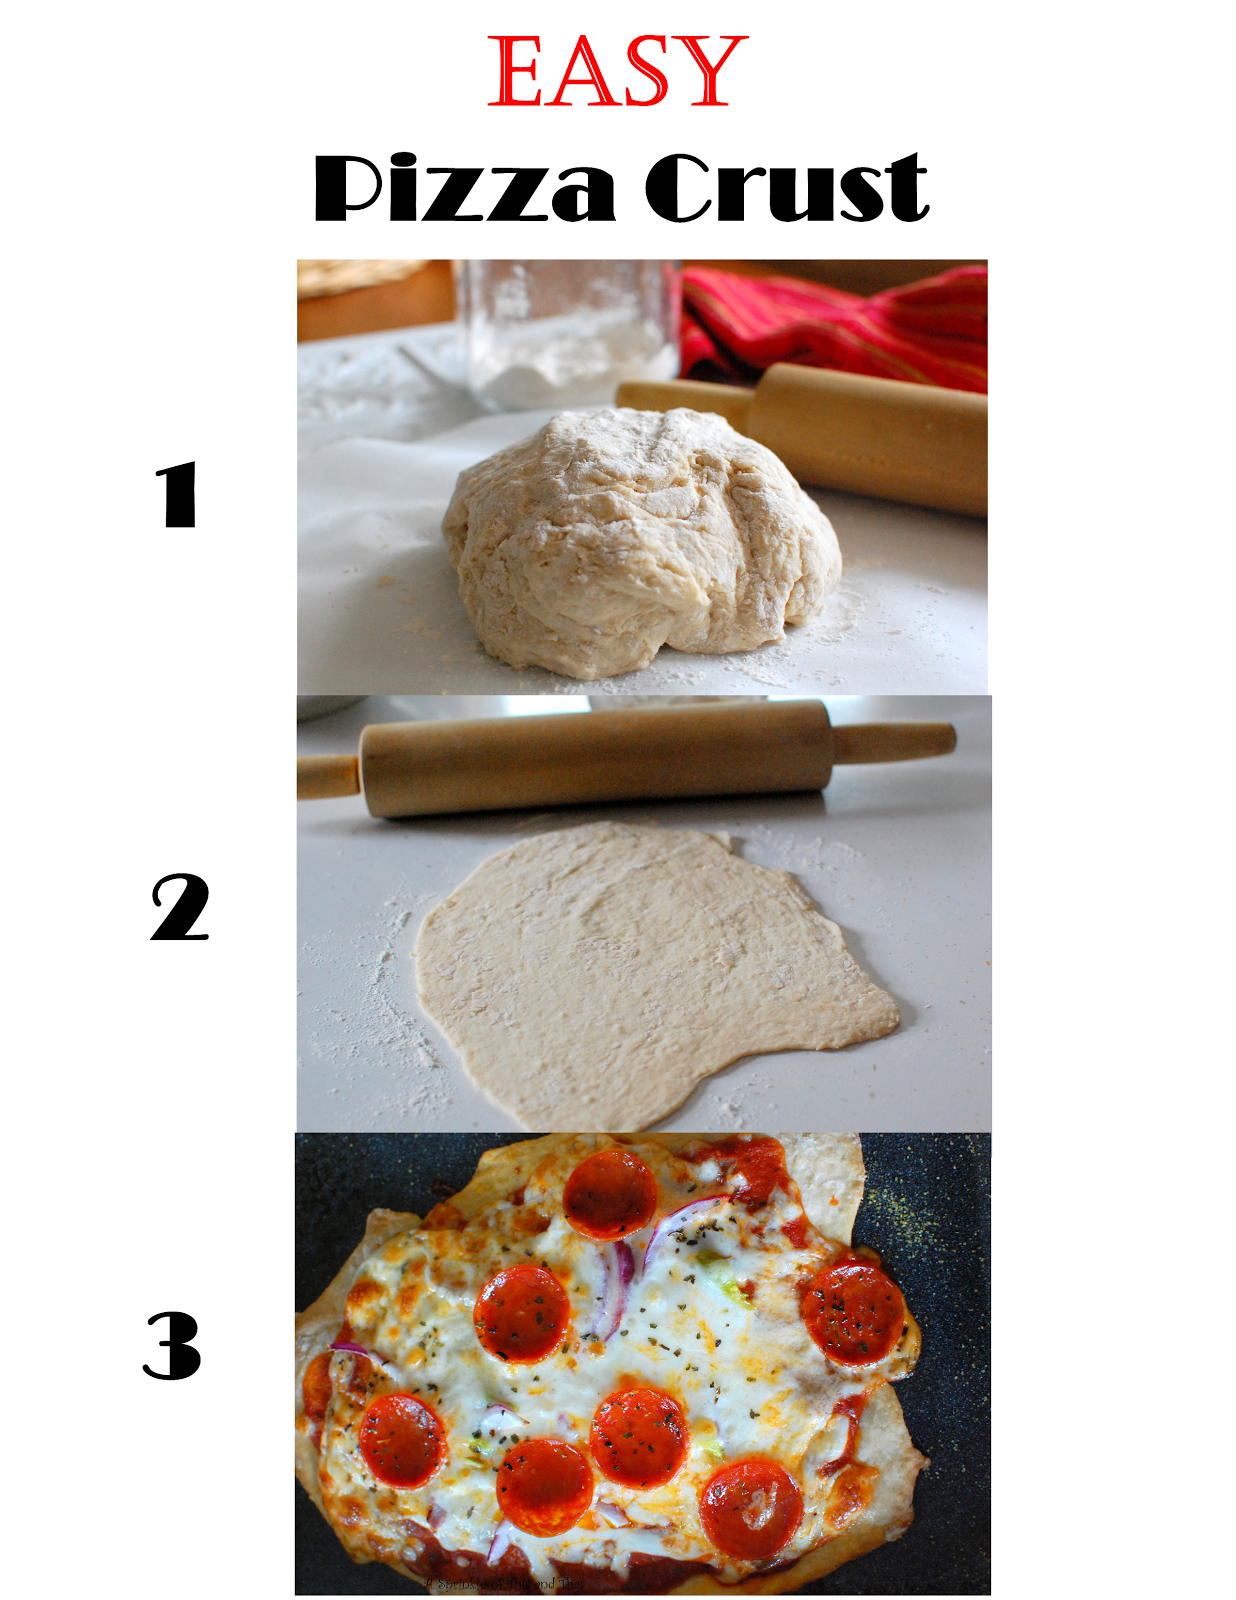 ... pizza crust basic new york style pizza dough basic pizza dough recipe